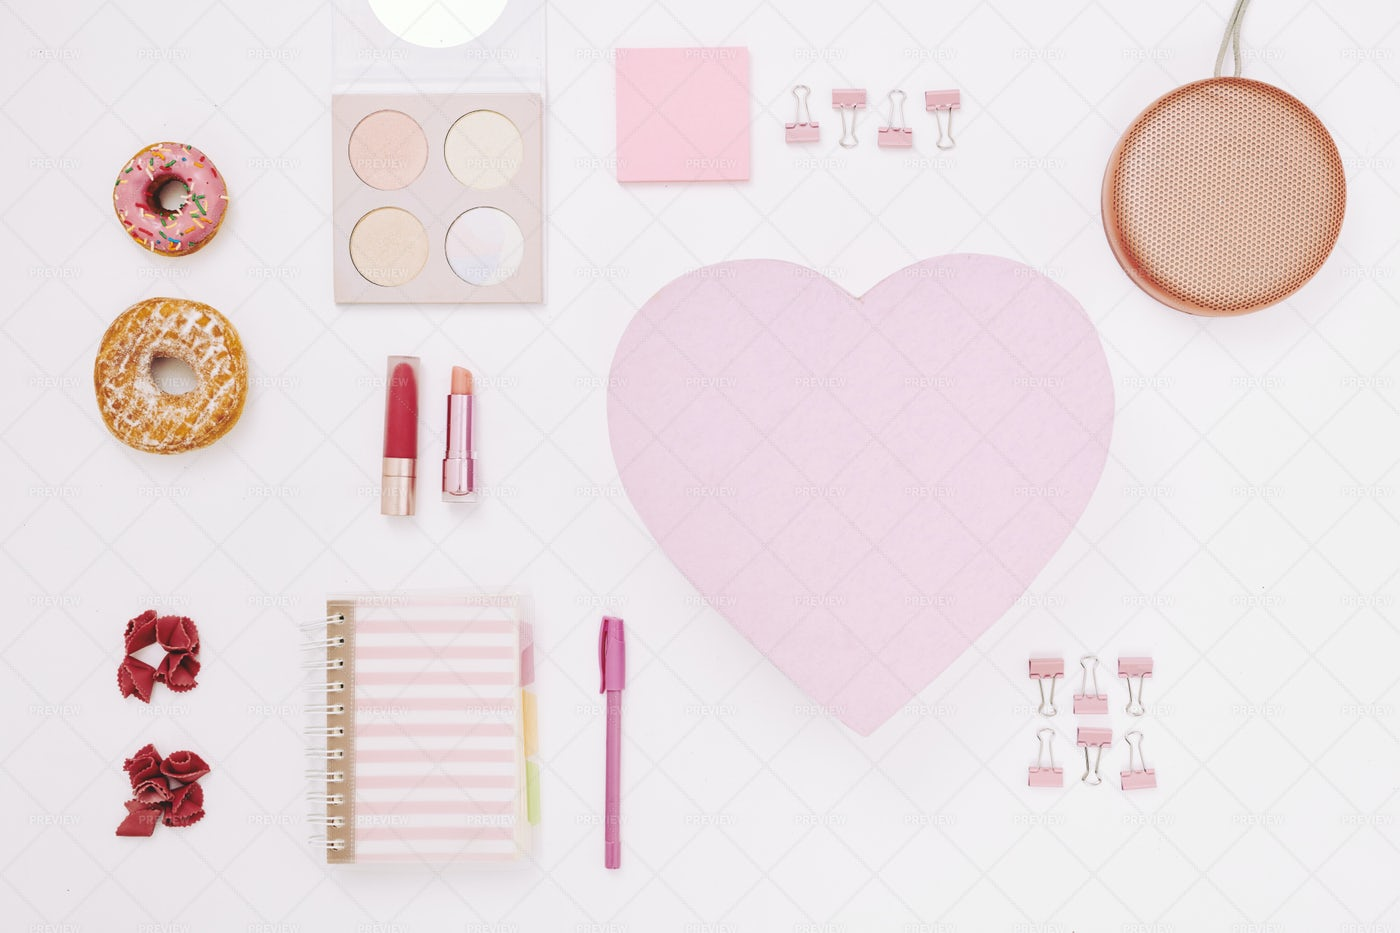 Cosmetics And Notepads For Women: Stock Photos